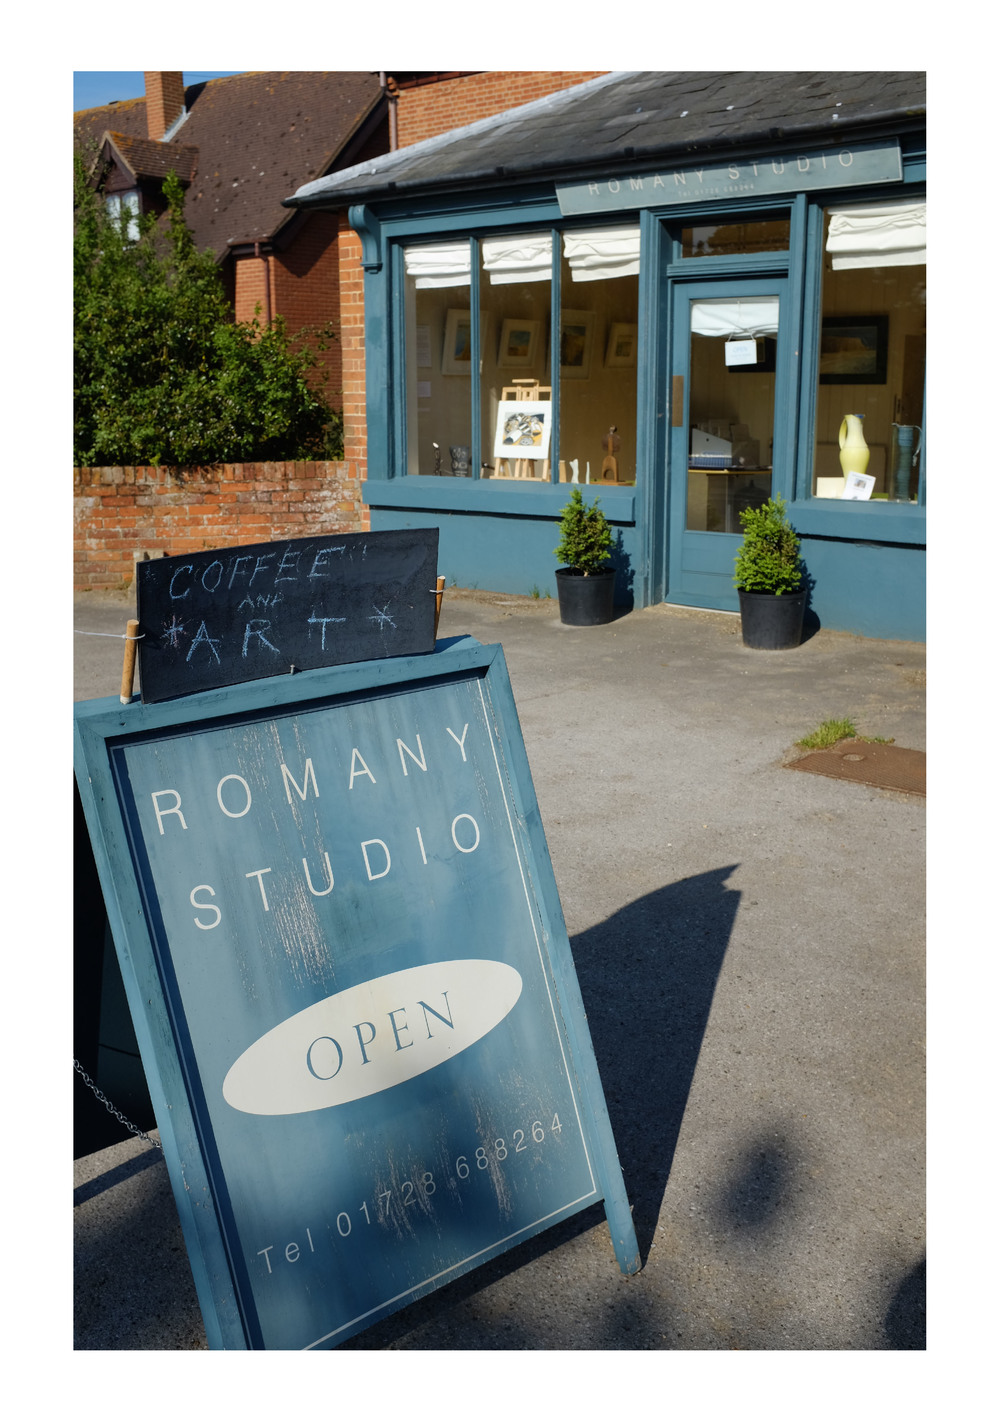 The  Romany Studio  in Tunstall, near Snape now has a collection of my work in their summer show. The gallery is open  May – October 2015, Wednesday – Sunday, 10am – 5.30pm. The space features work by artists including Clare Curtis, Jenny Partridge and Nigel Casseldine.